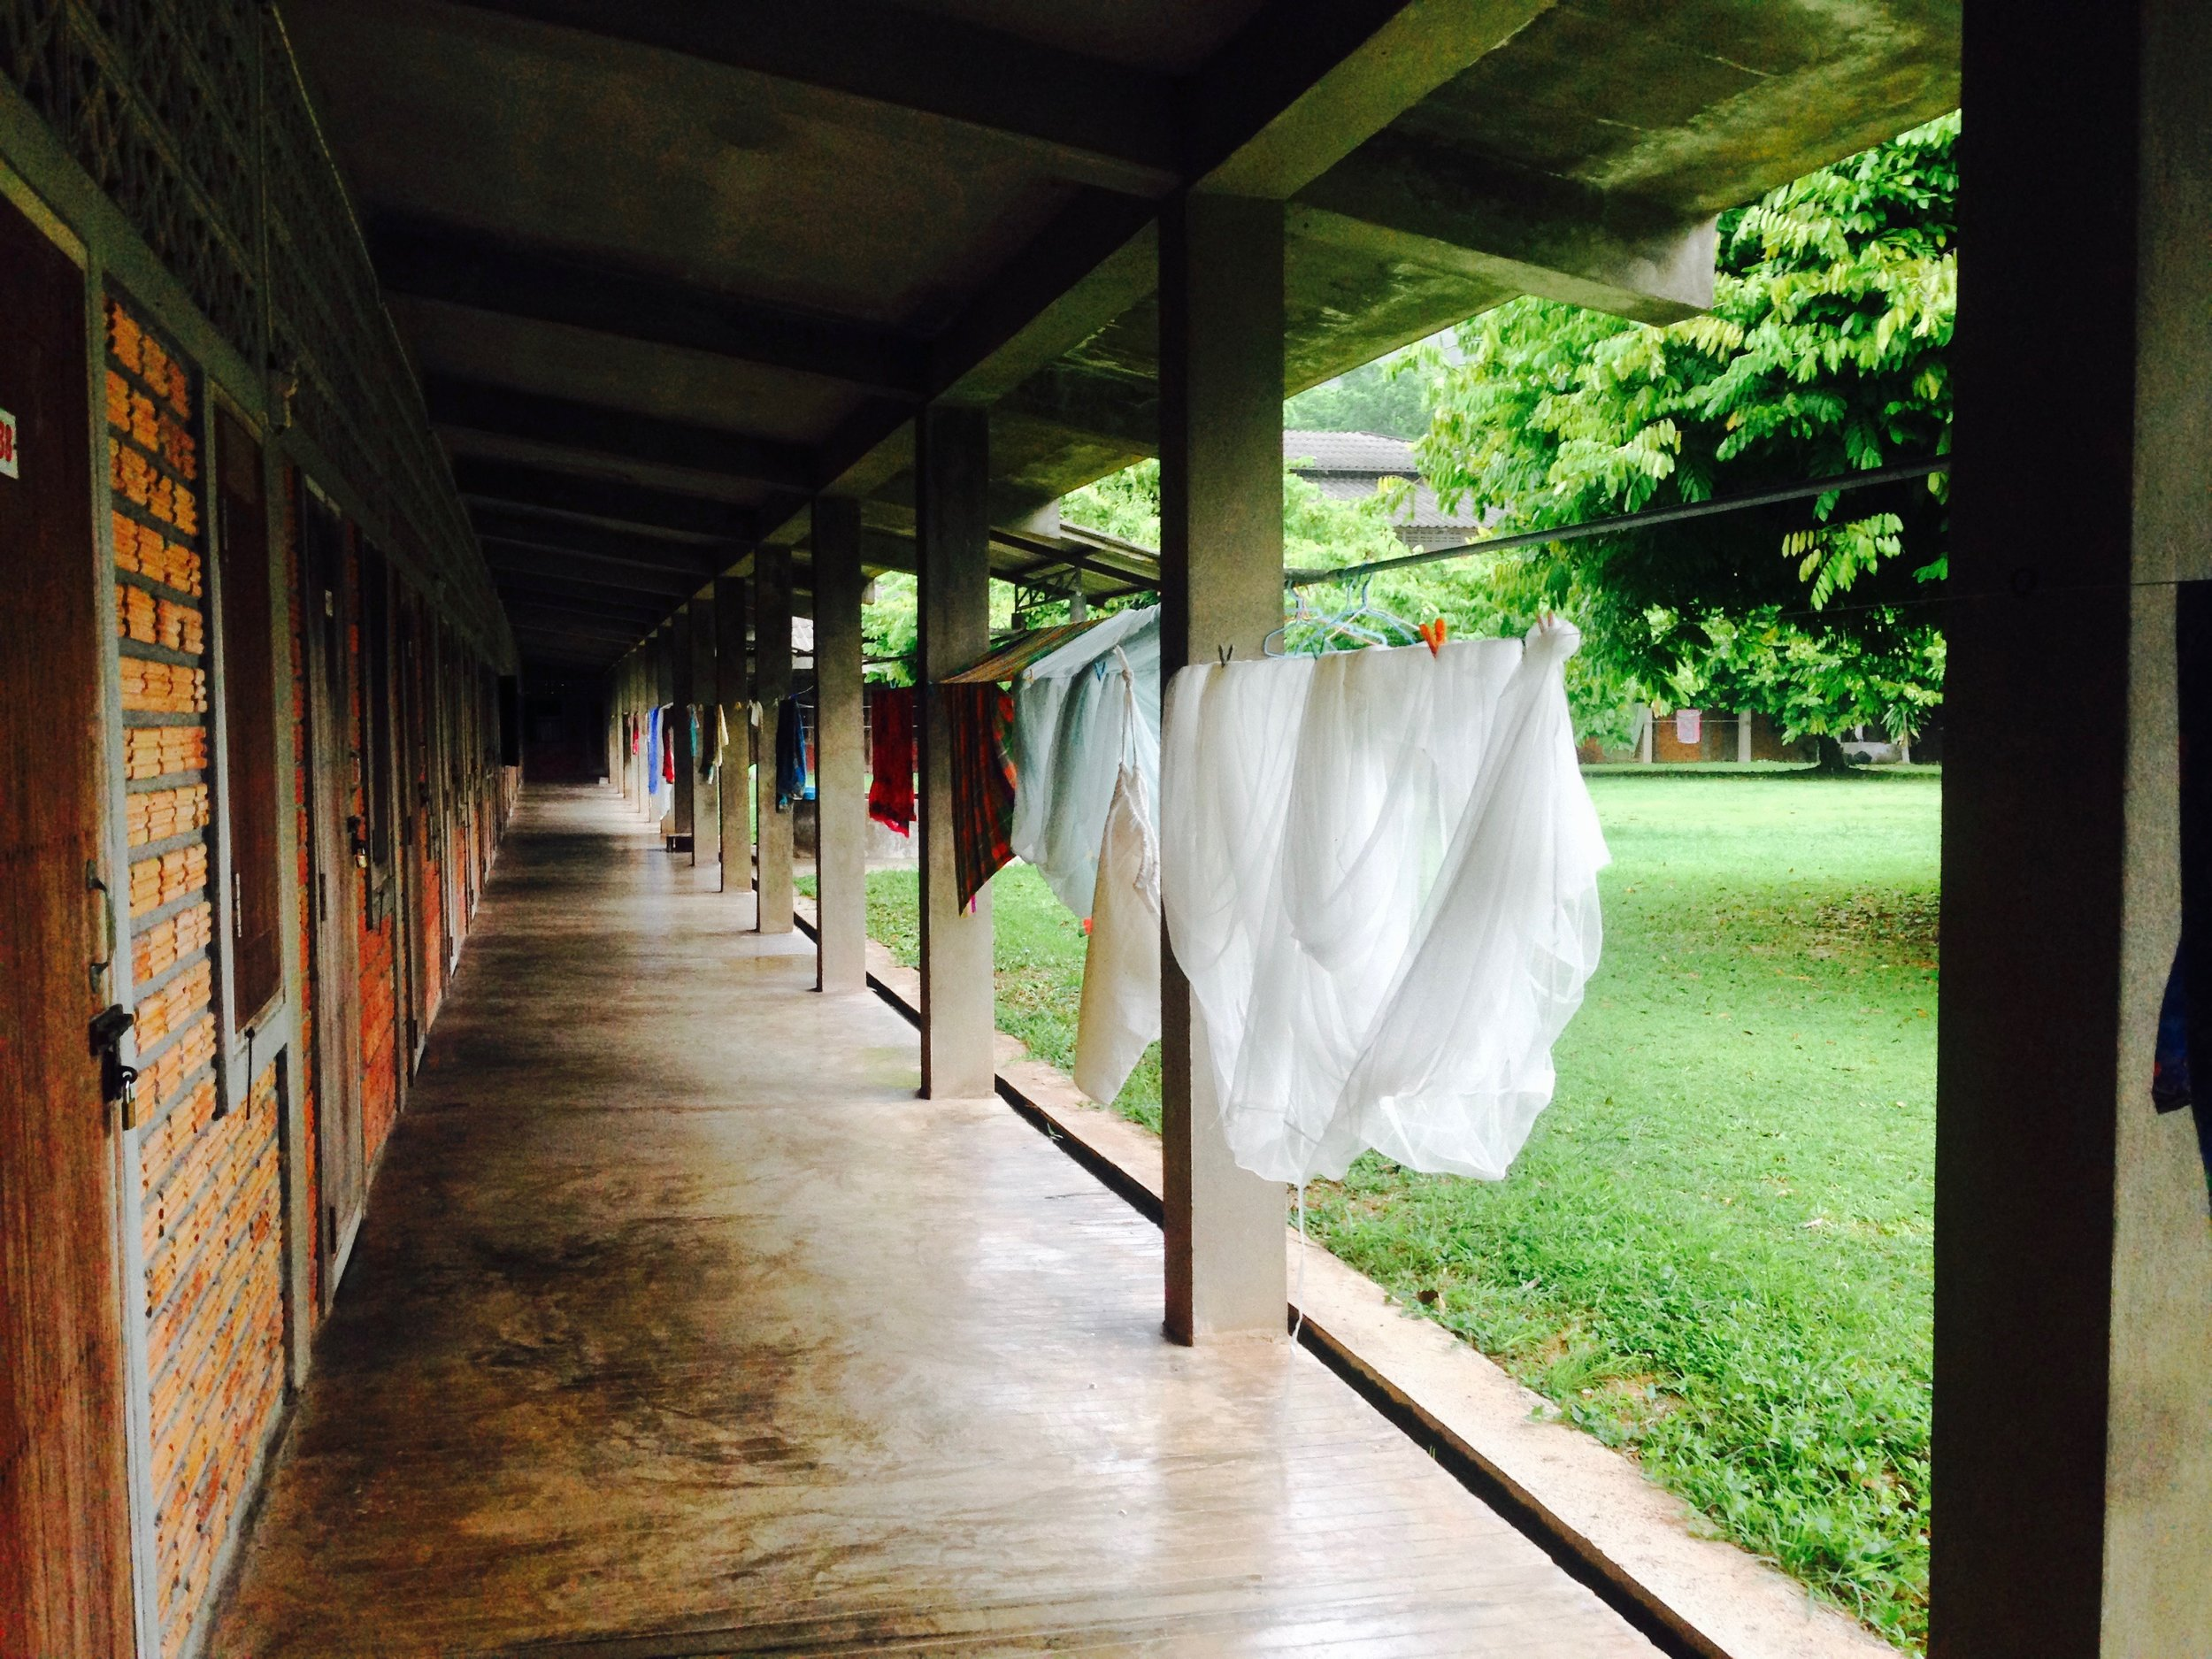 Everything in the dorm is open air, and everyone had their own laundry line. Laundry wasn't just the activity of laundry -- at Suan Mokkh, everything is seen as meditation. So laundry = laundry meditation, naturally.